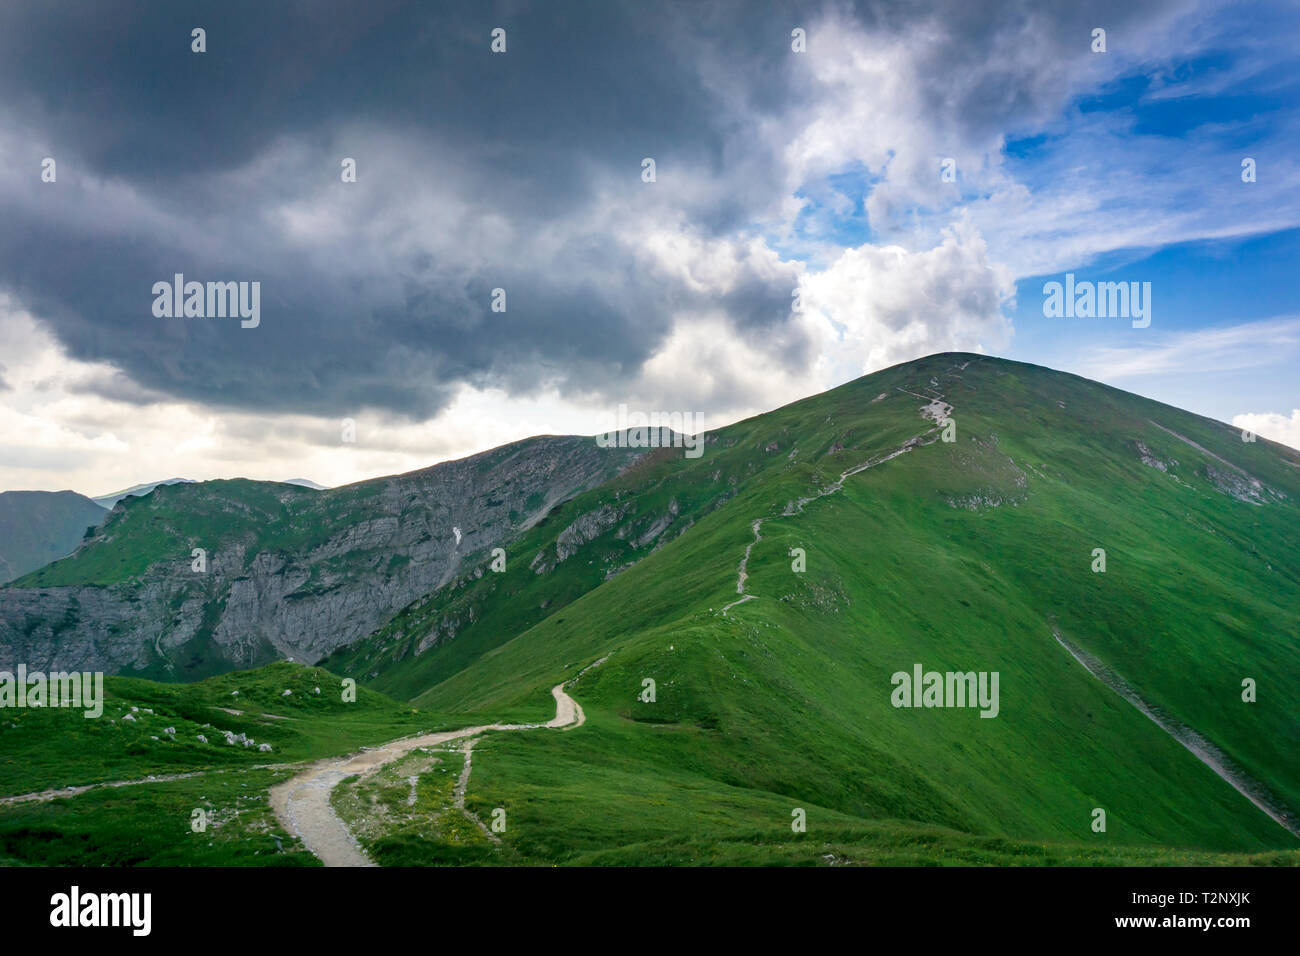 Whirling clouds over the peaks of the Tatra Mountains in June. Area of Czerwone Wierchy. - Stock Image